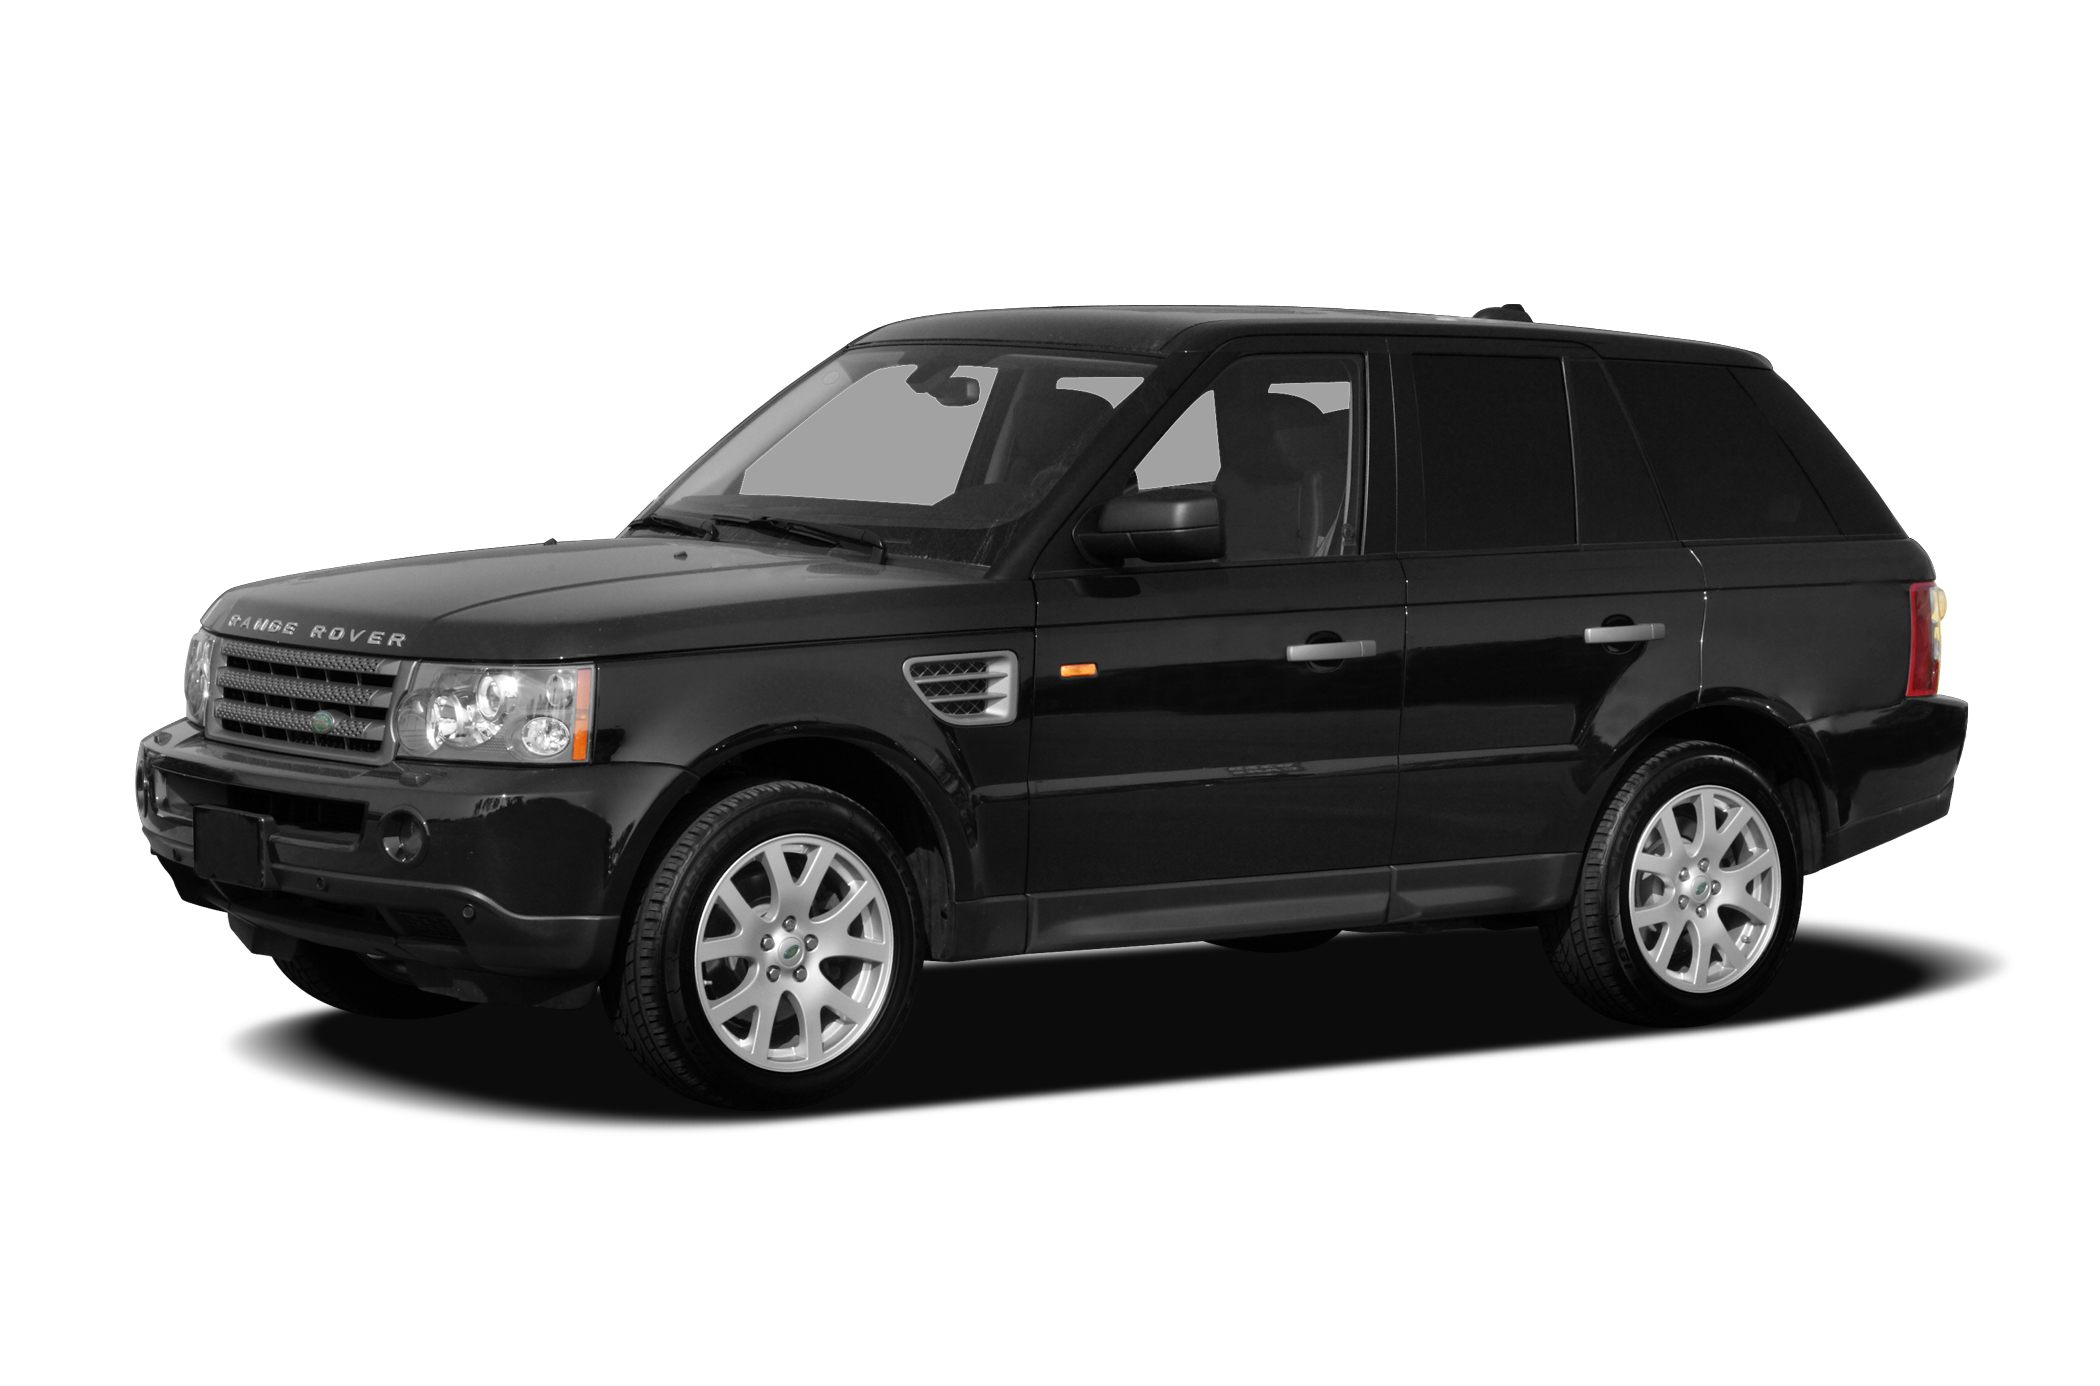 2007 Land Rover Range Rover HSE SUV for sale in Springfield for $16,618 with 99,350 miles